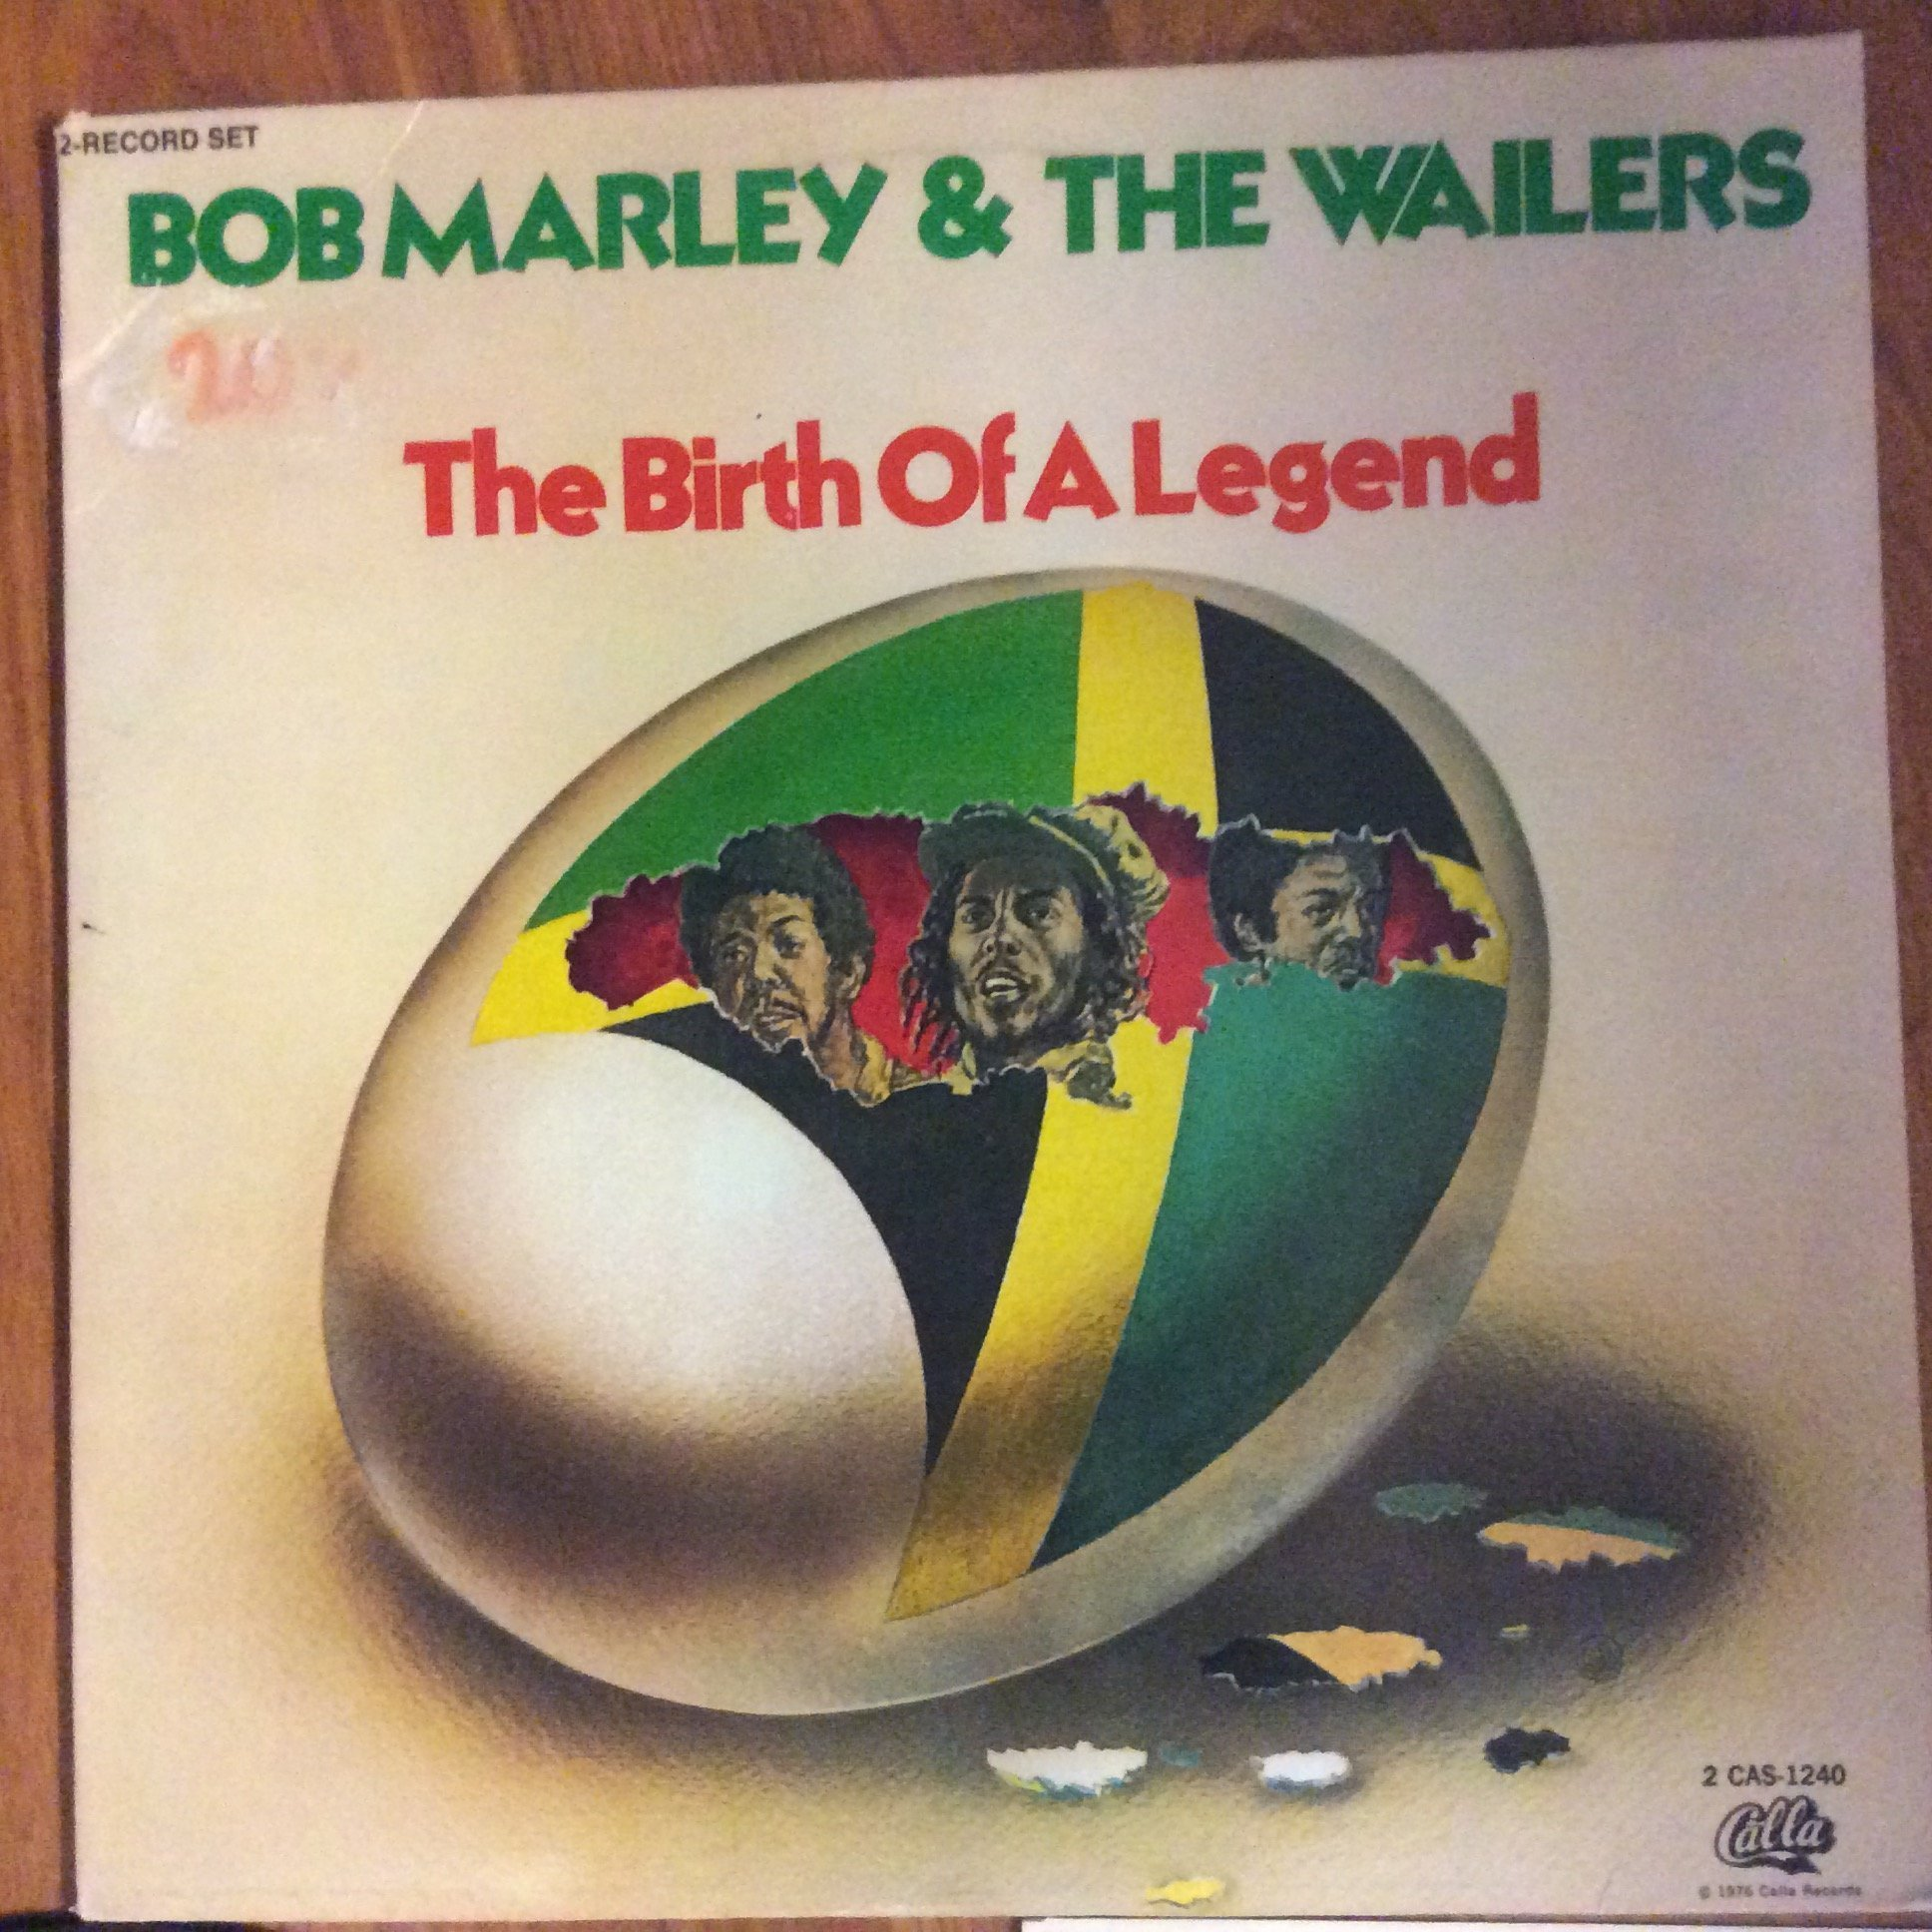 BOB MARLEY & THE WAILERS - THE BIRTH OF A LEGEND  1980